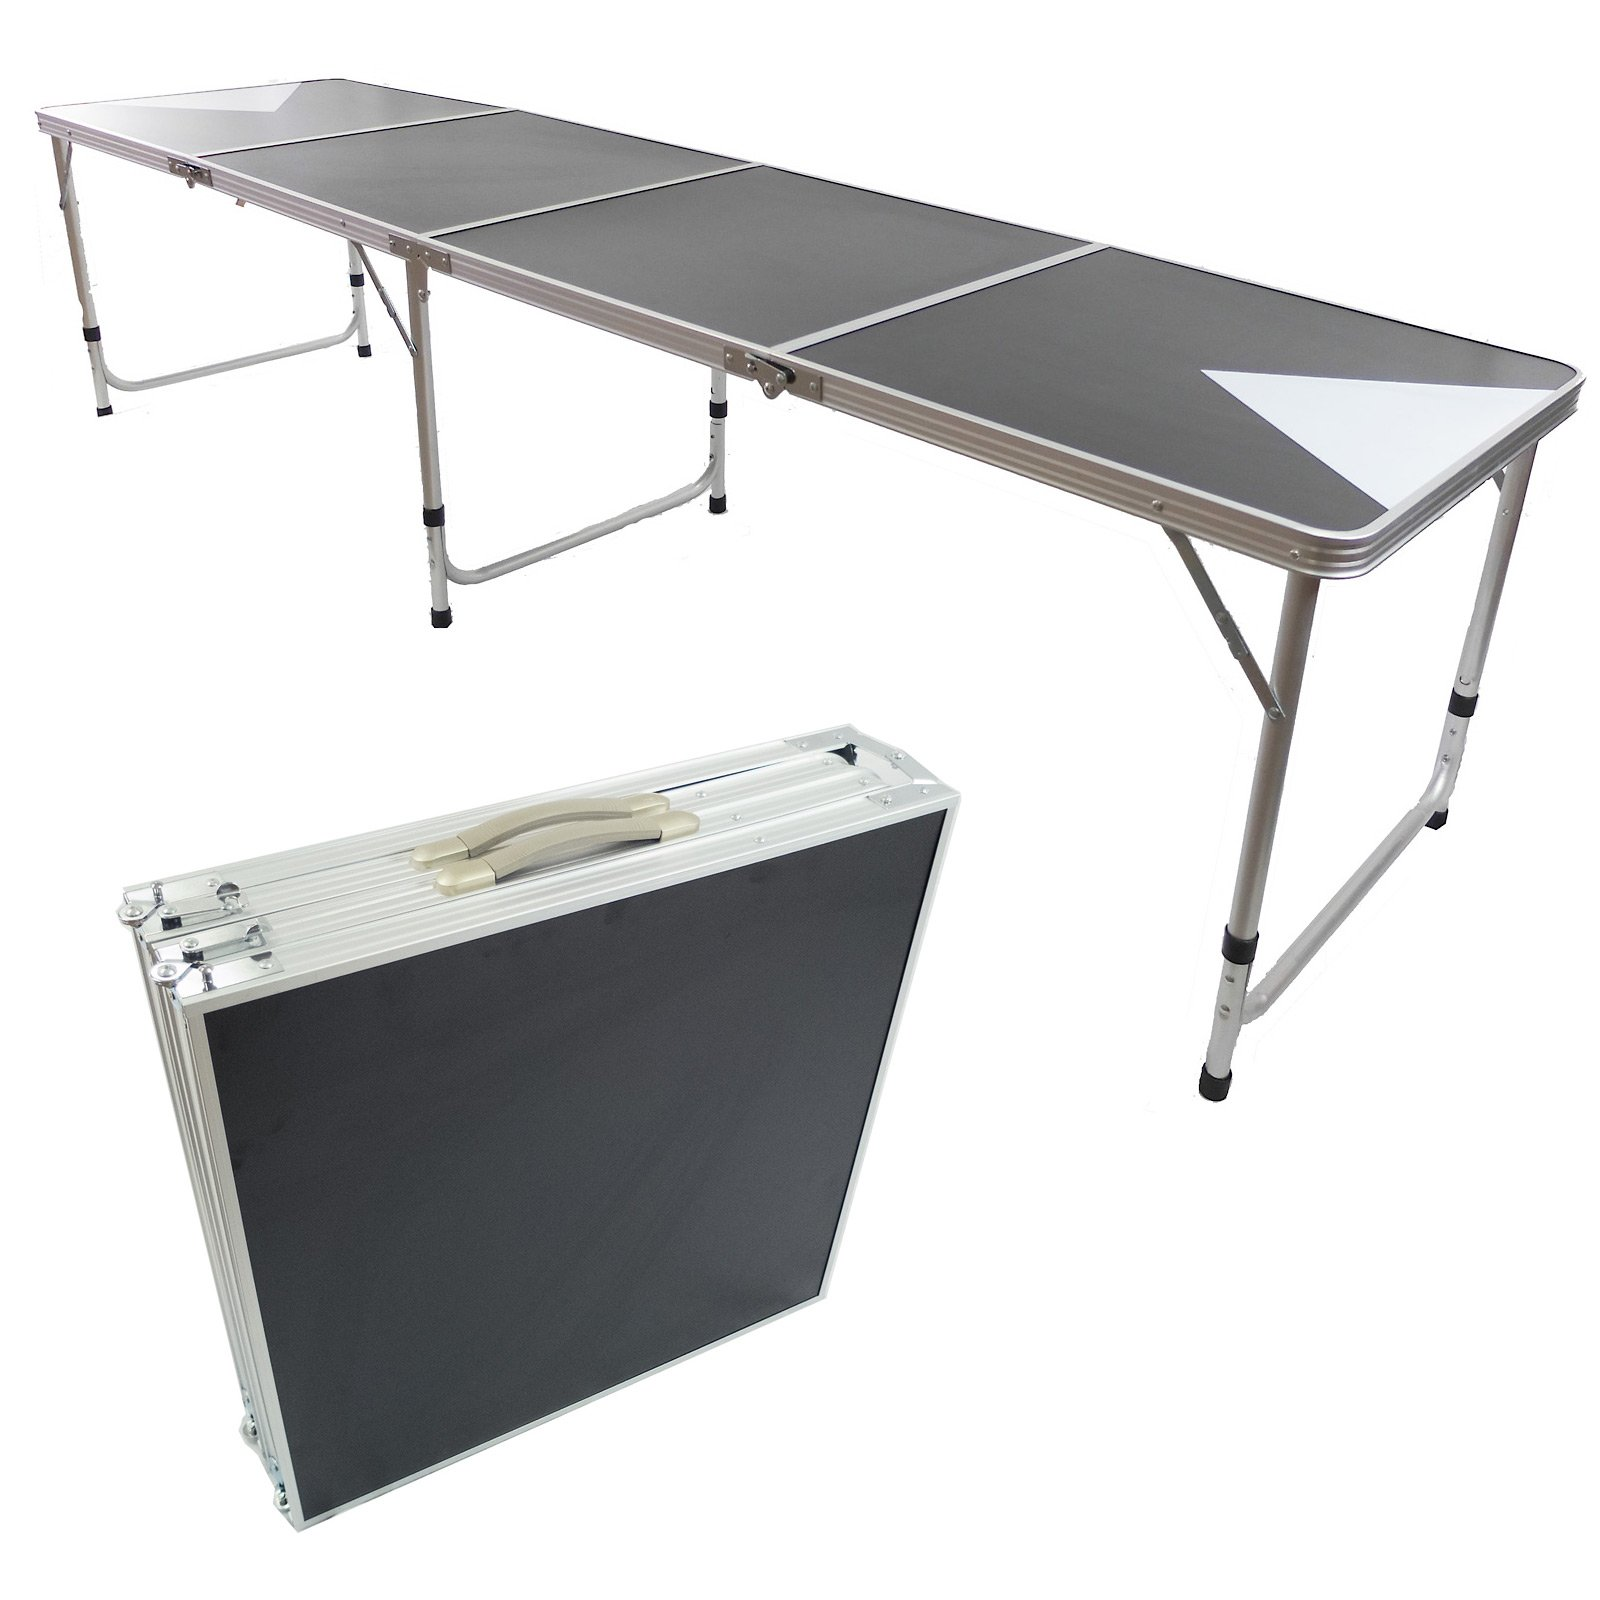 NEW 8' BEER PONG TABLE ALUMINUM PORTABLE ADJUSTABLE FOLDING INDOOR OUTDOOR TAILGATE PARTY GAME #3 by PONGBUDDY